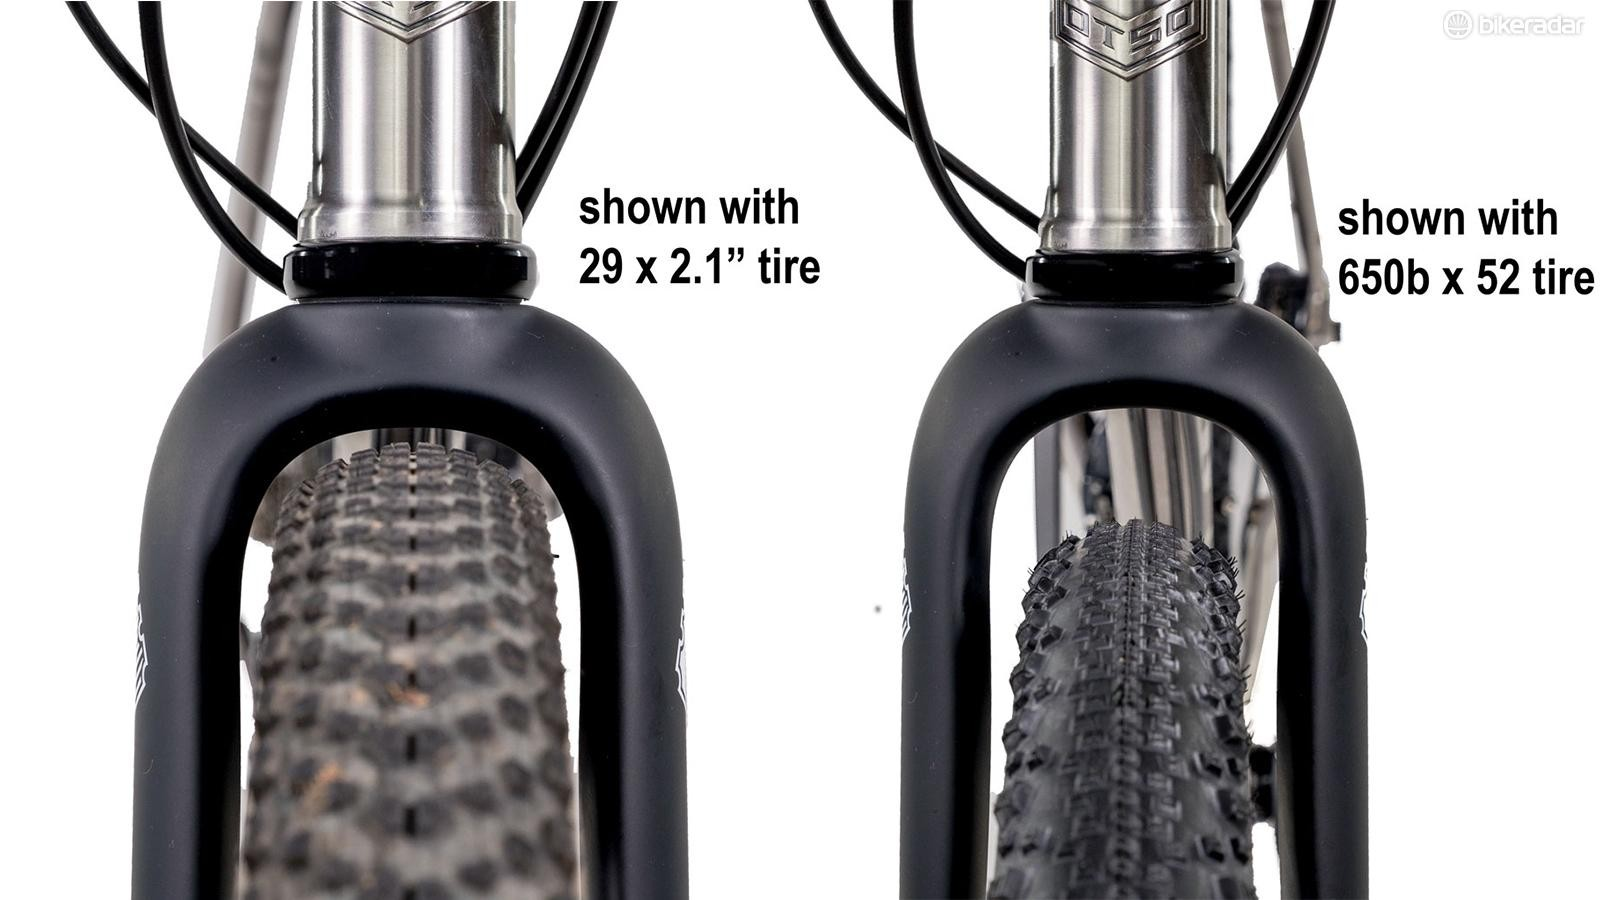 The Hiili has massive tire clearance for today's gravel bikes